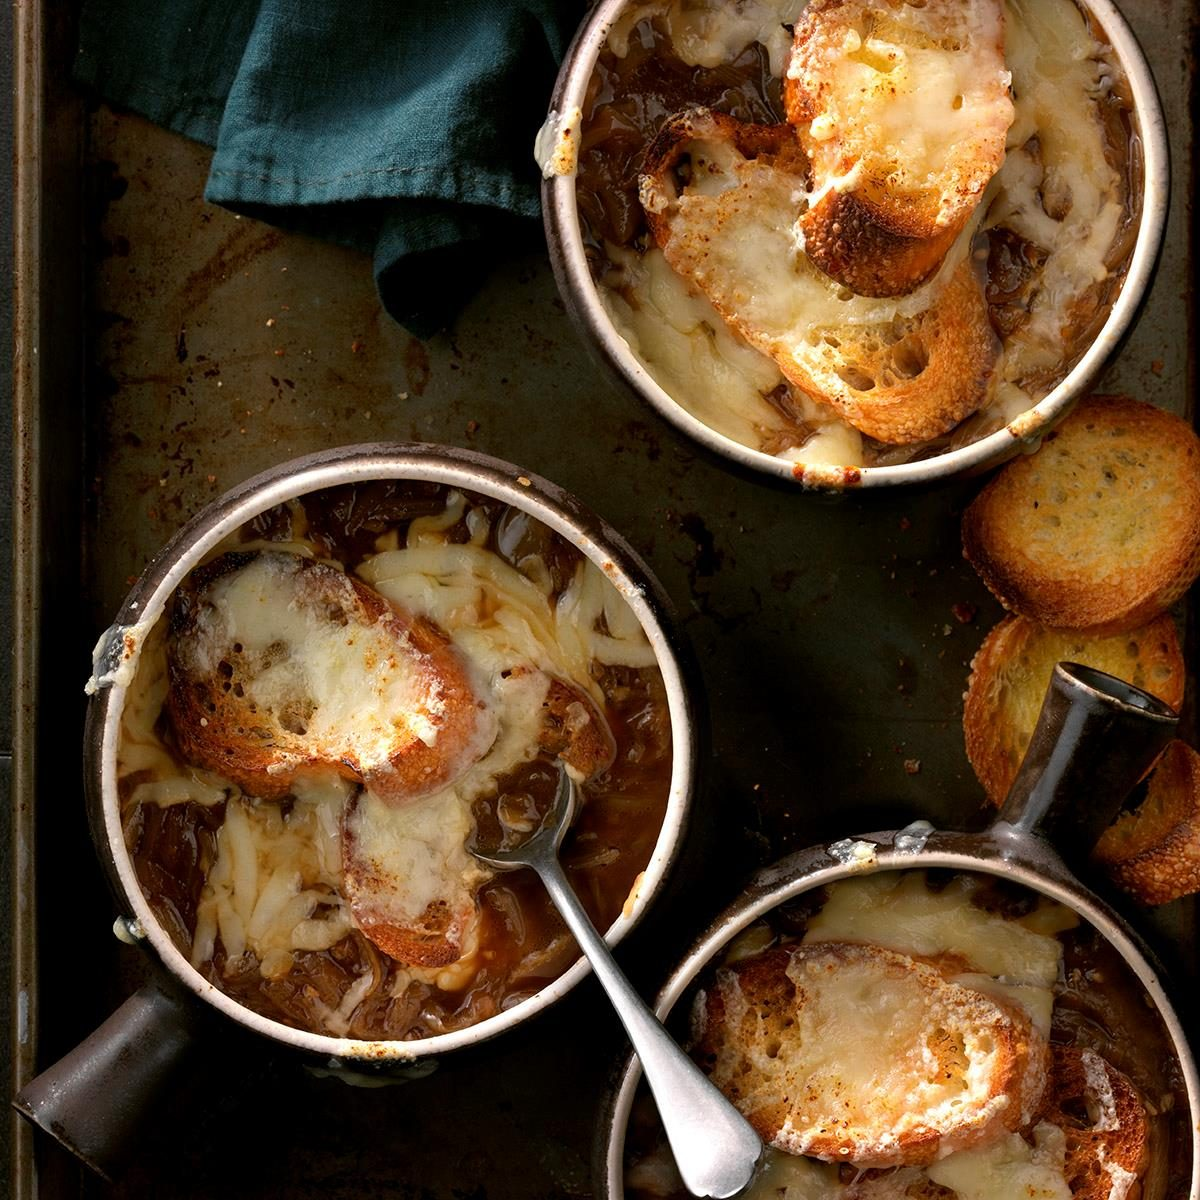 Classic French Onion Soup Exps Thfm18 160479 D10 17 2b 9